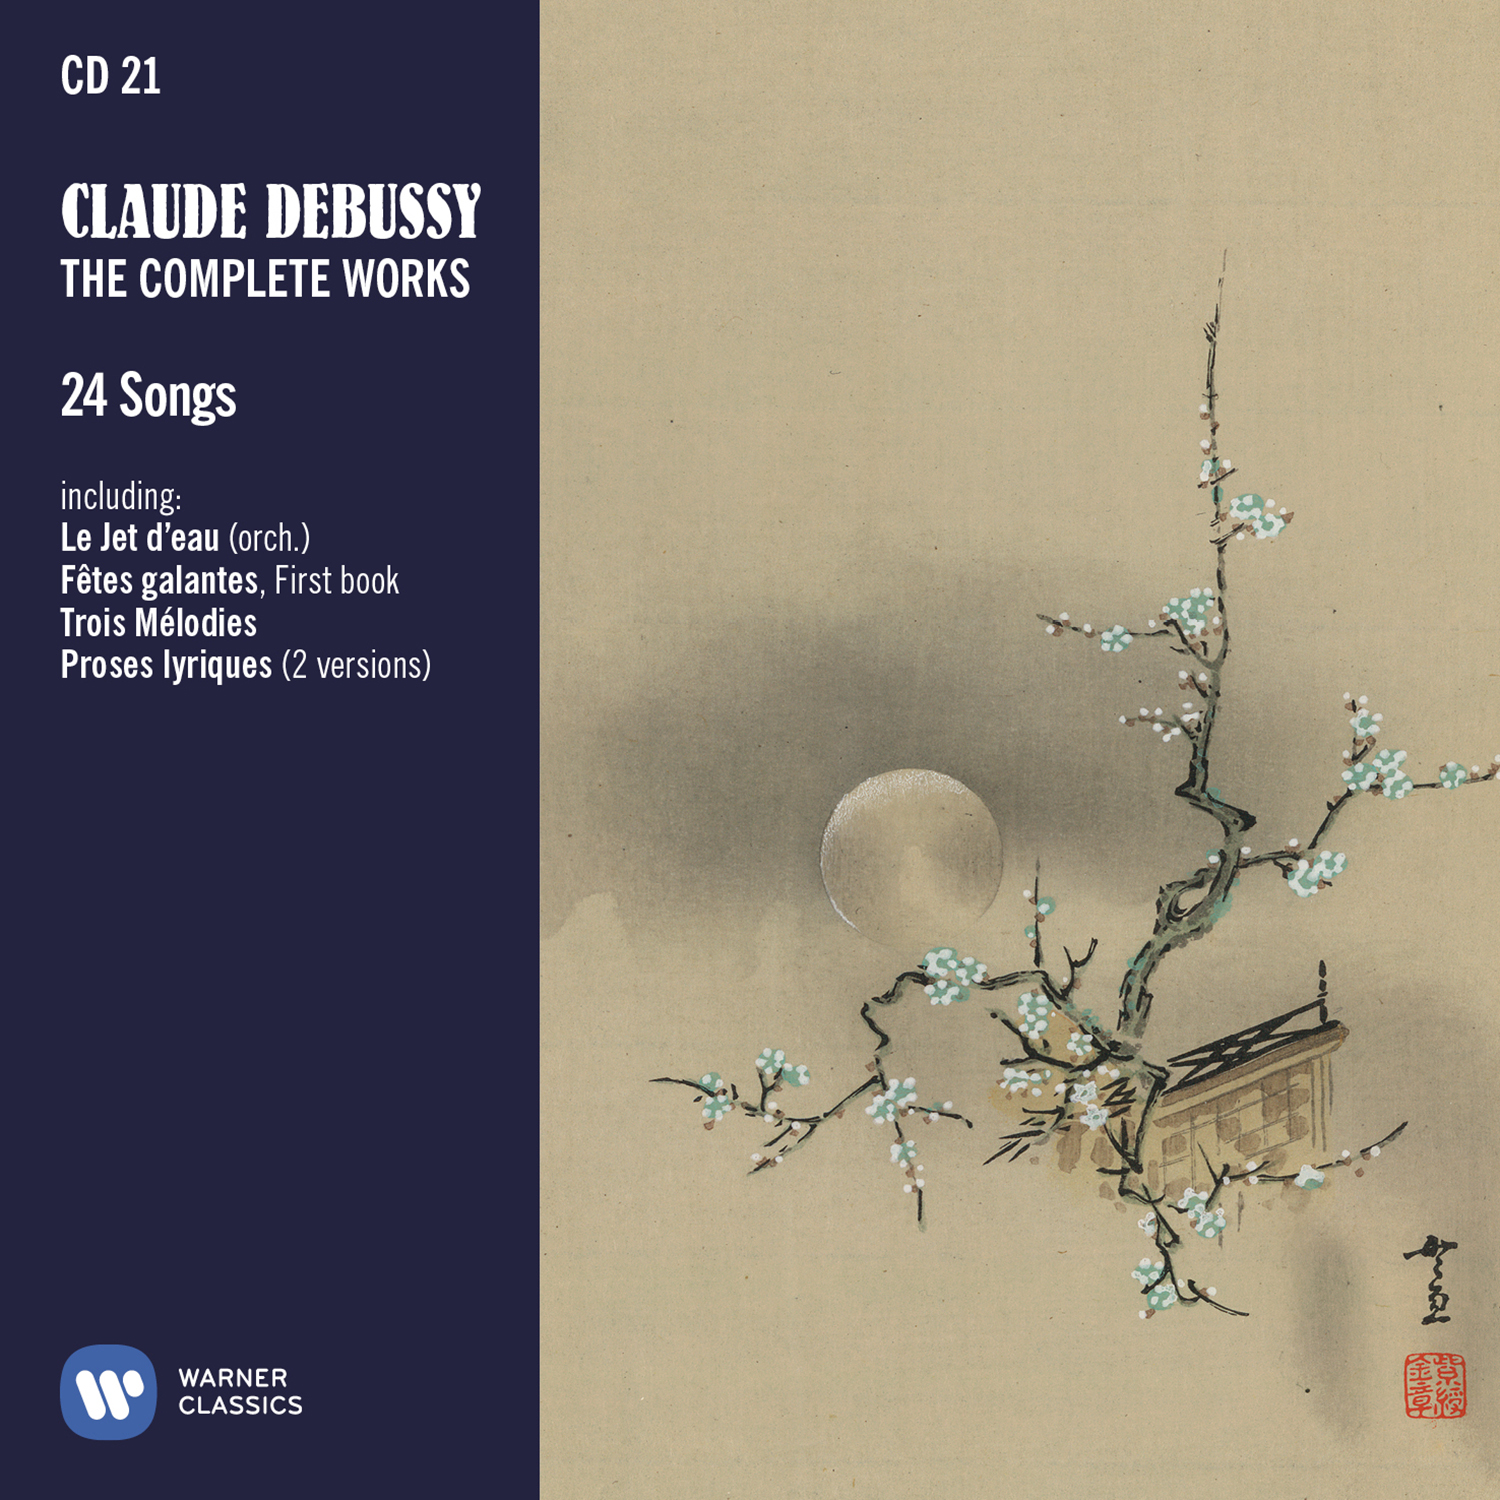 Debussy The complete works - Cover wallet CD21.jpg